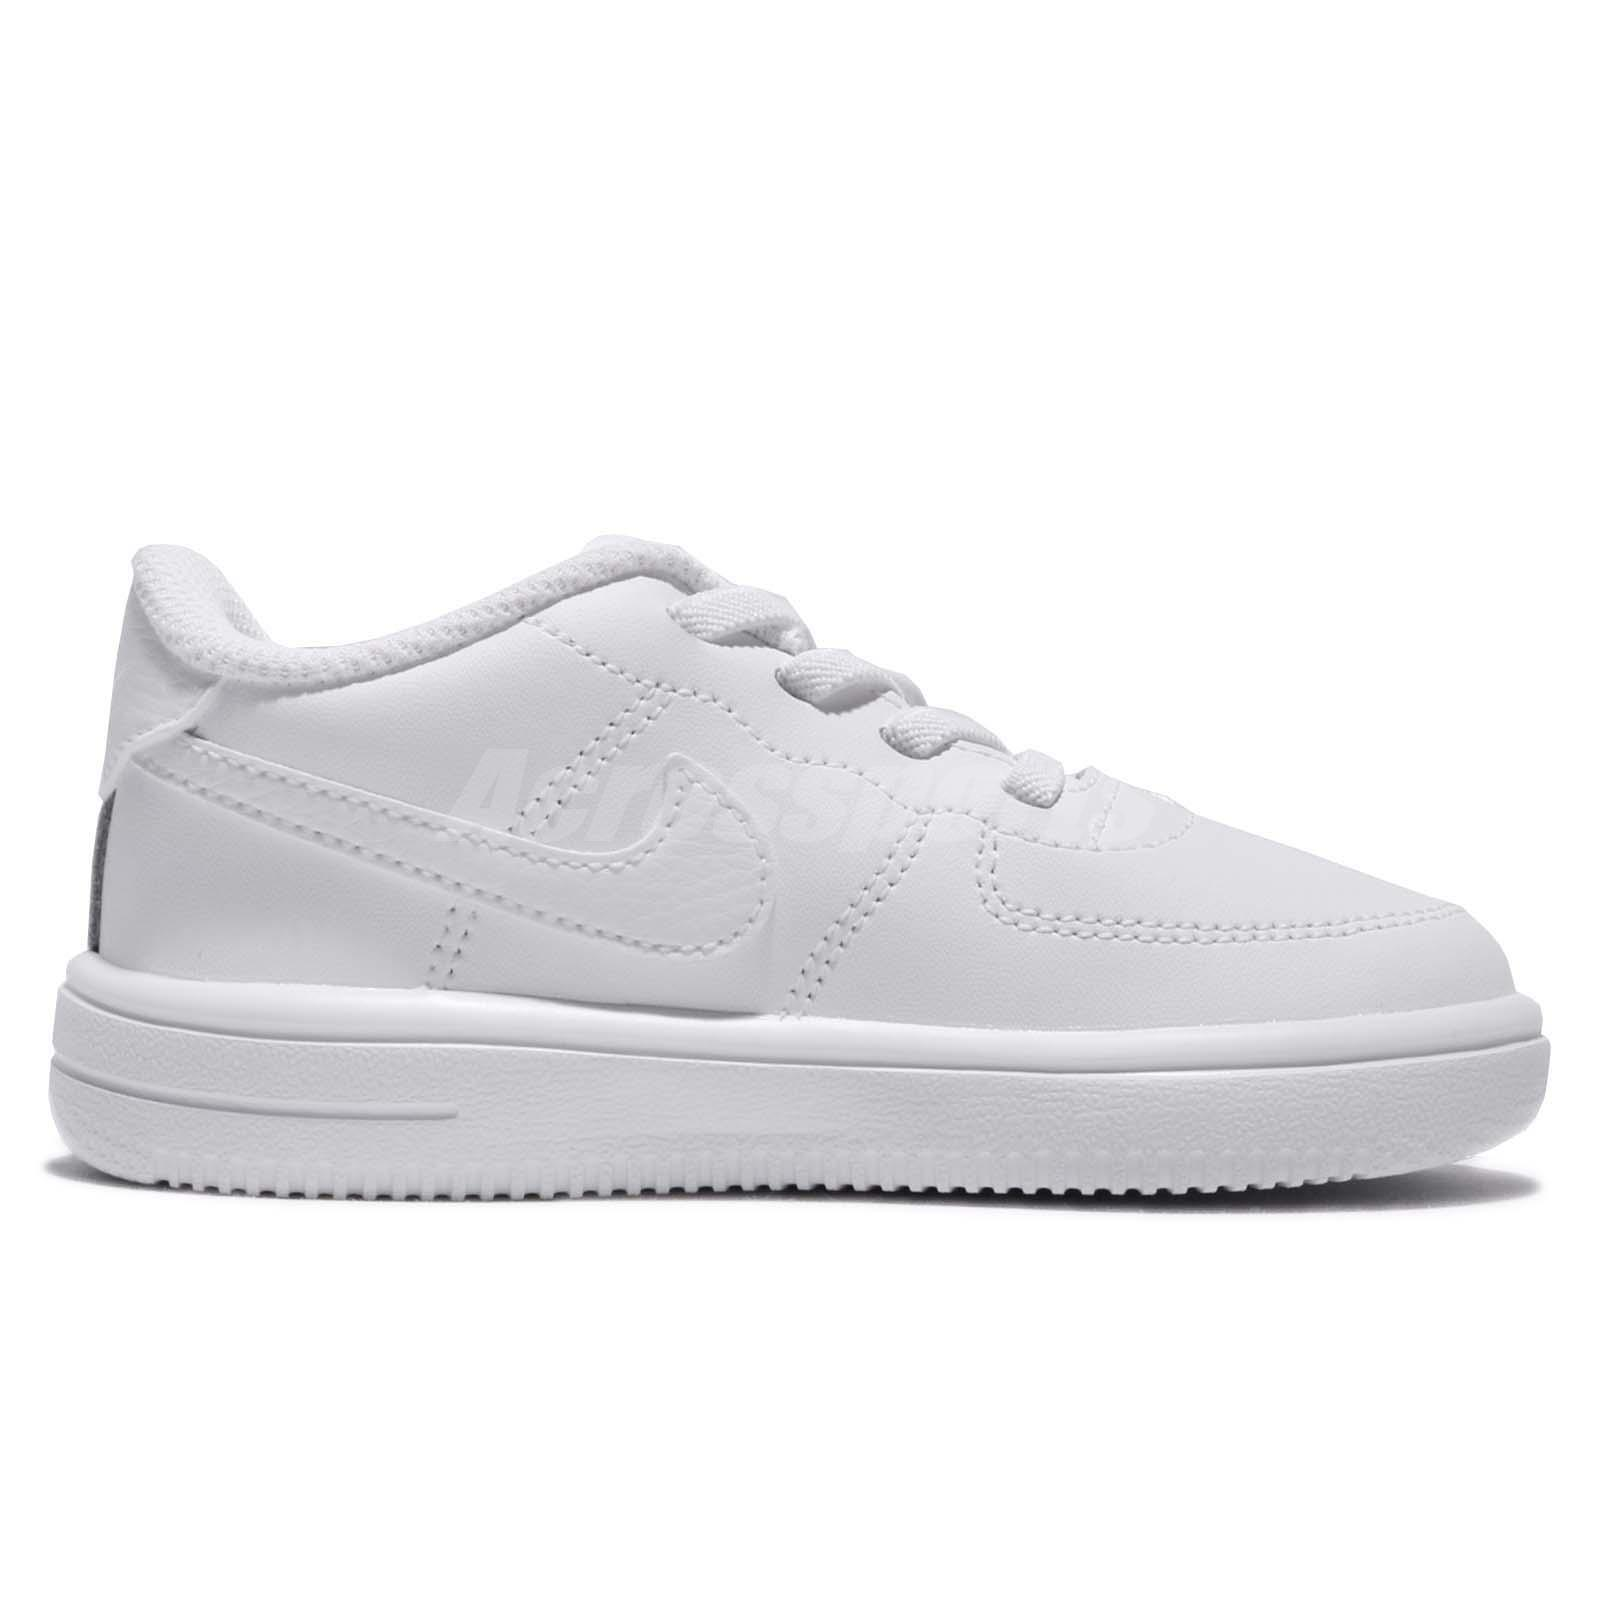 2cdf23014b Details about Nike Force 1 18 TD Triple White AF1 Toddler Infant Baby Shoes  Sneaker 905220-100